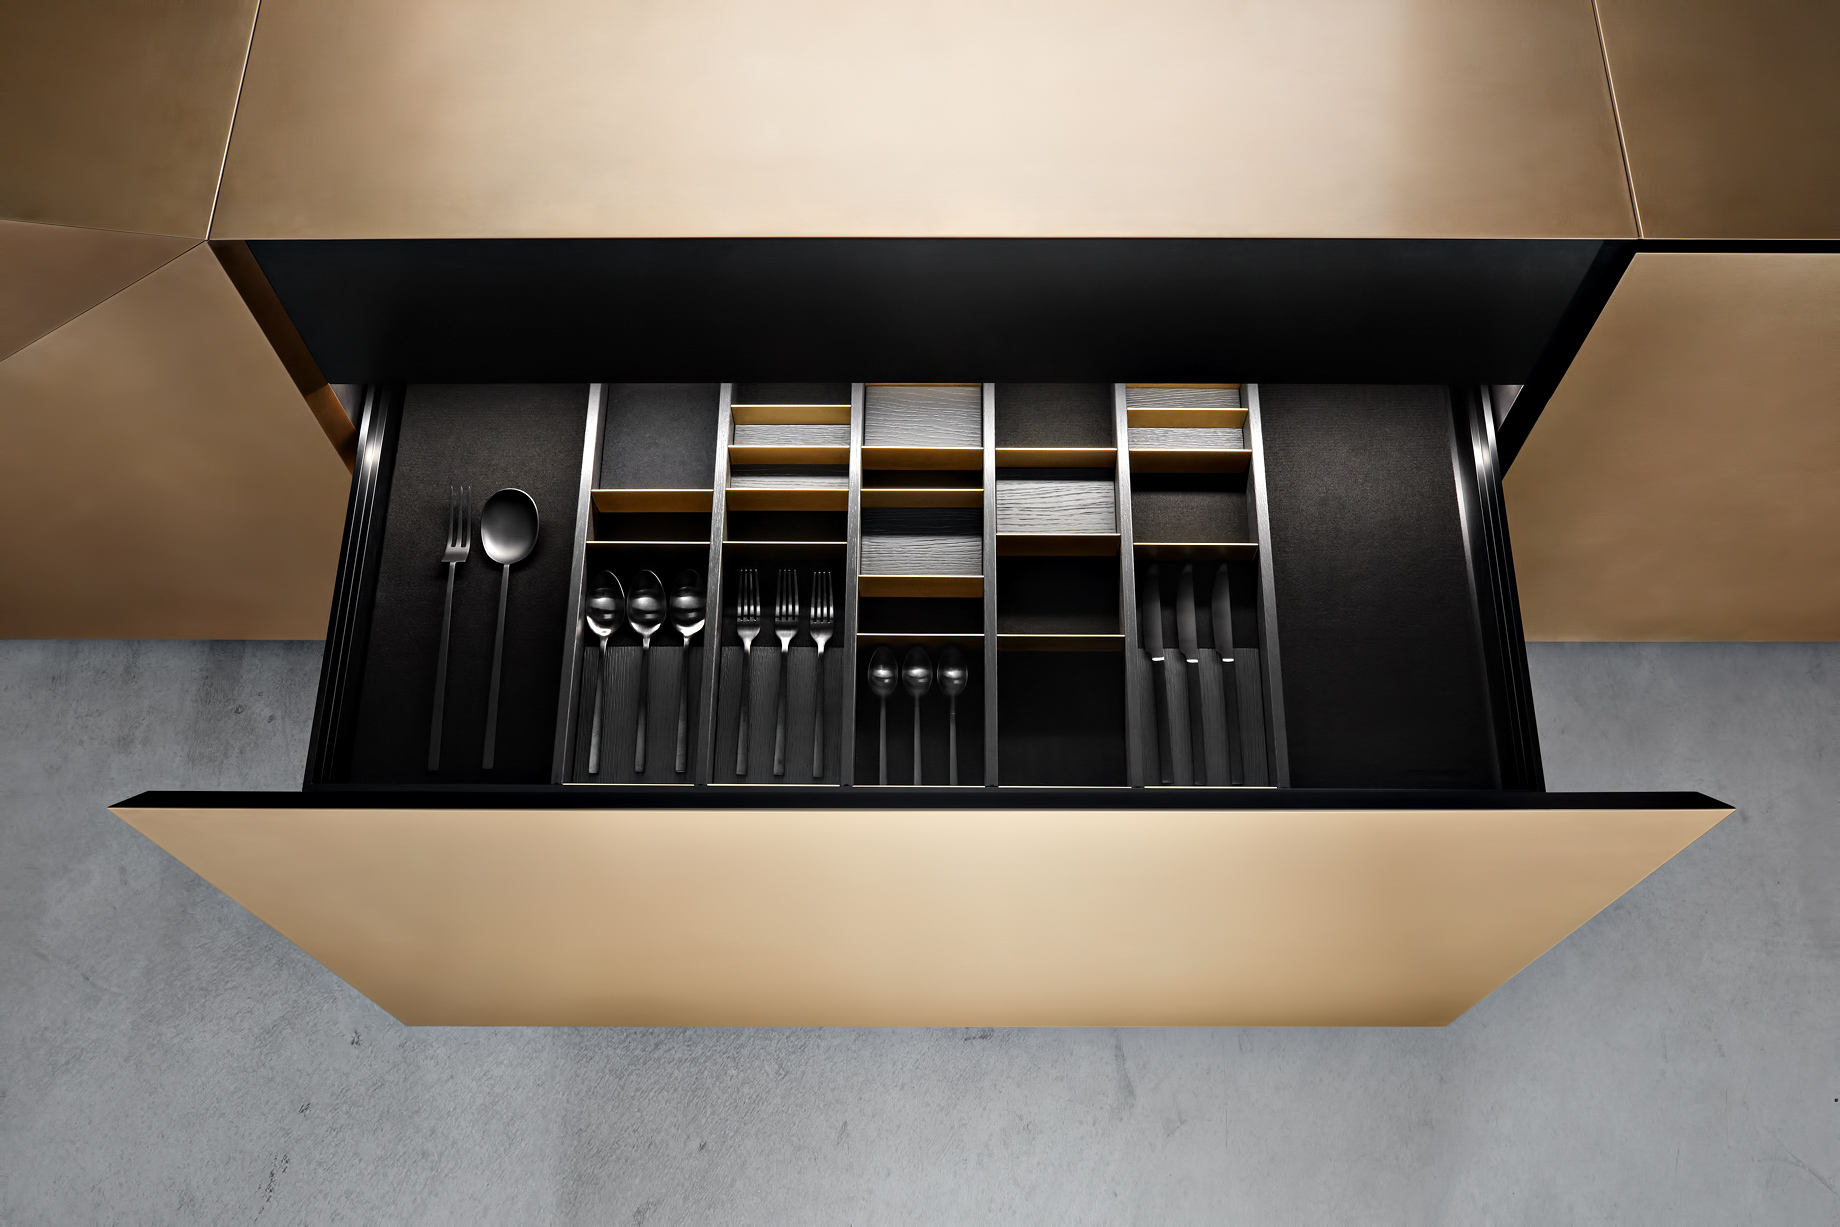 Iconic Steininger FOLD High Tech Kitchen Block Design Inspired by Origami – Seperation system with flexible magnetic elements